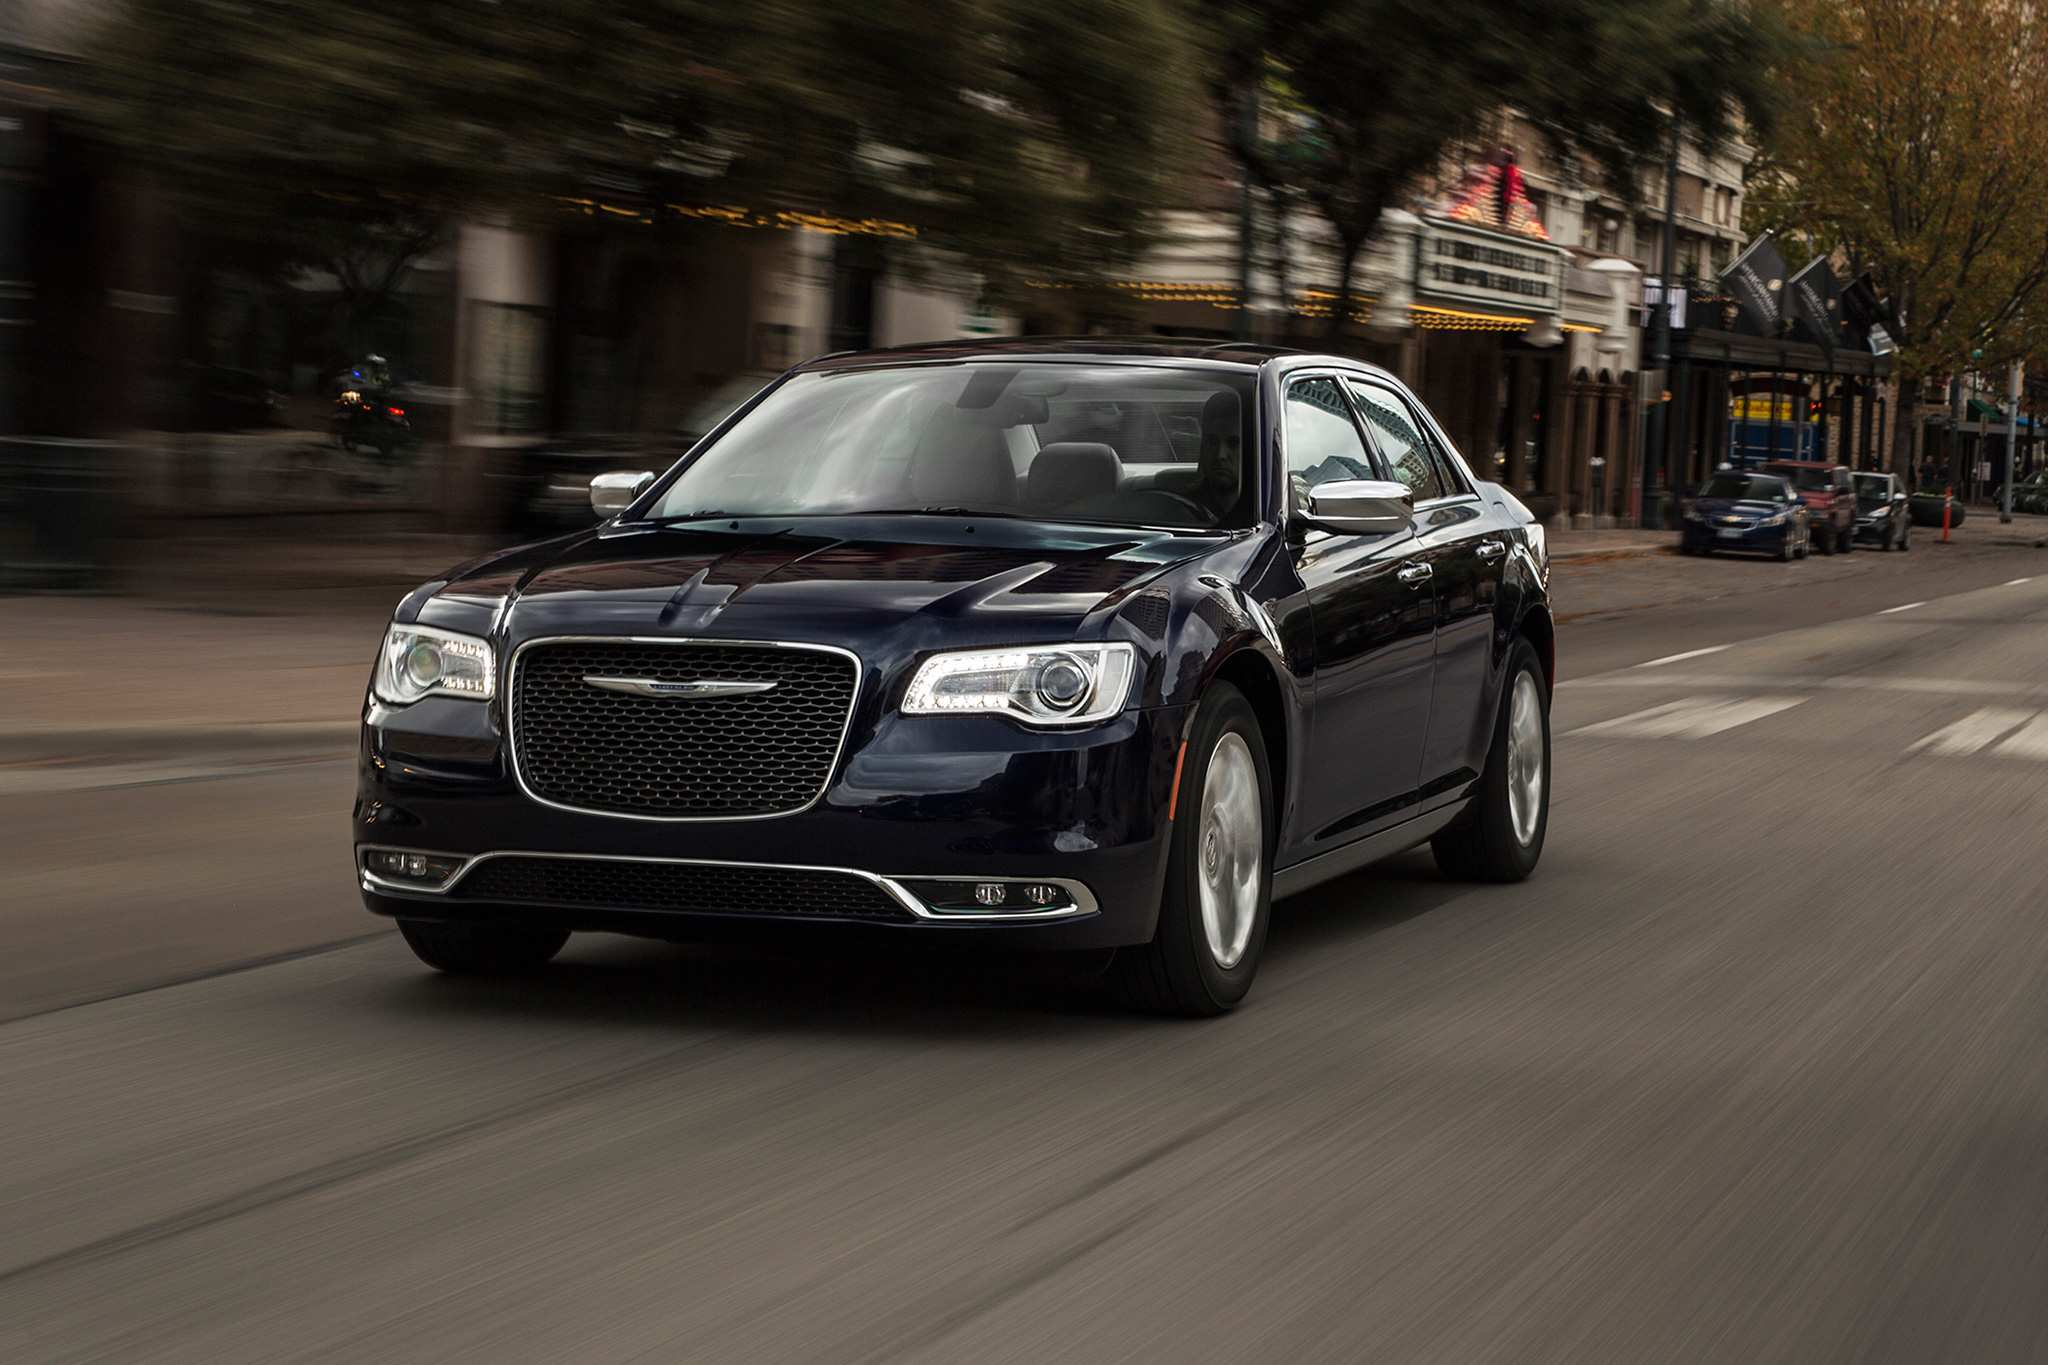 28 The Best 2019 Chrysler 300 Srt8 Ratings